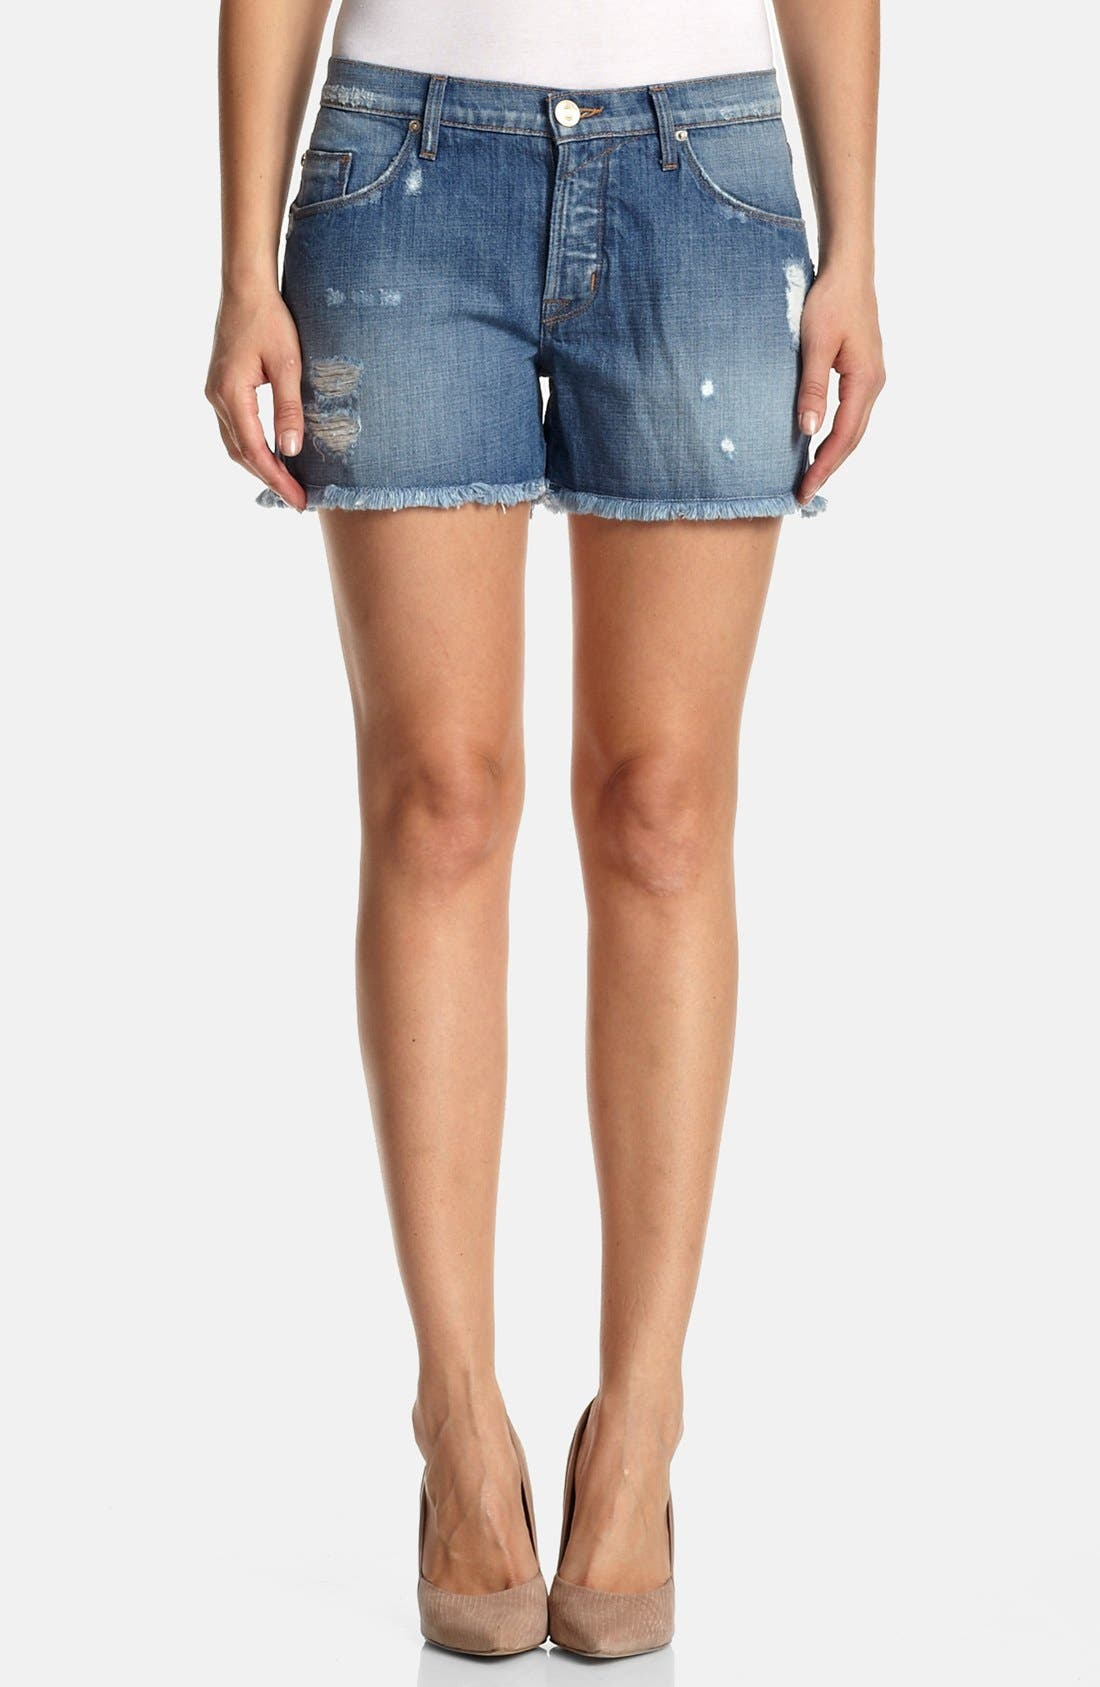 Alternate Image 1 Selected - Hudson Jeans 'Libertine' Cutoff Boyfriend Shorts (May This Be Love)